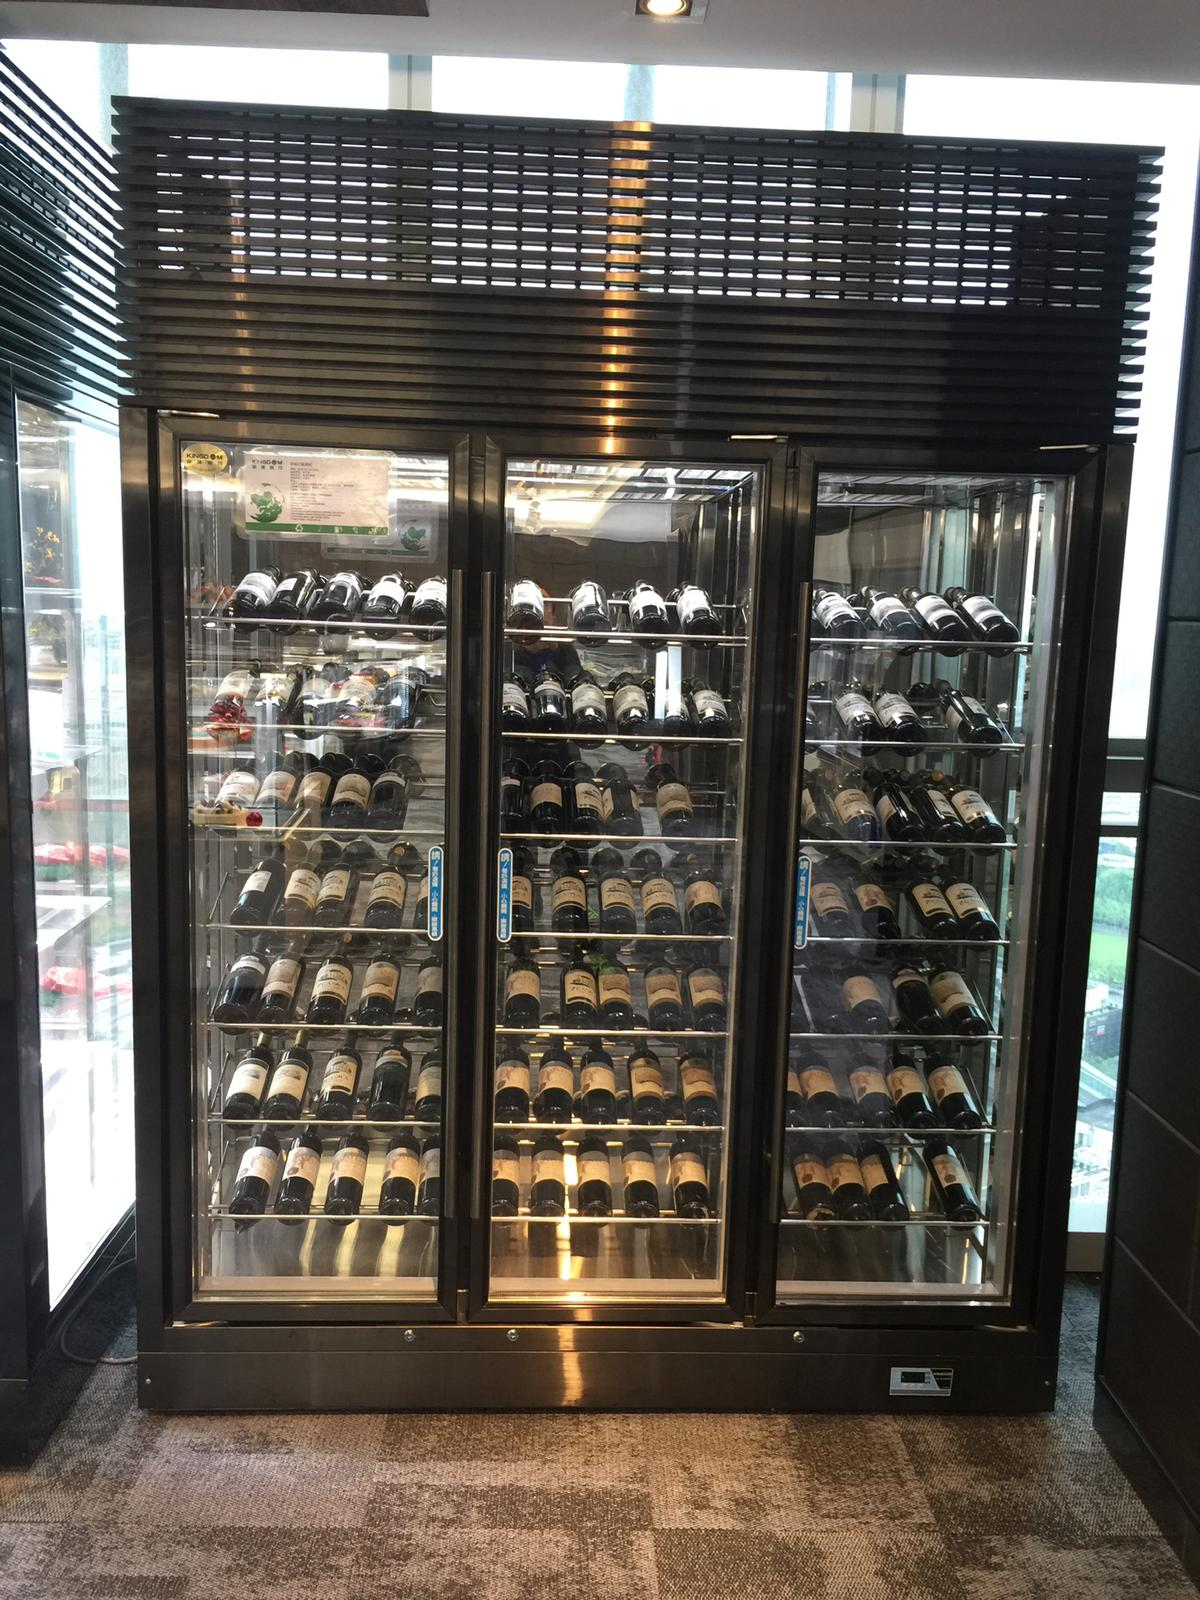 all glass upright refrigerator